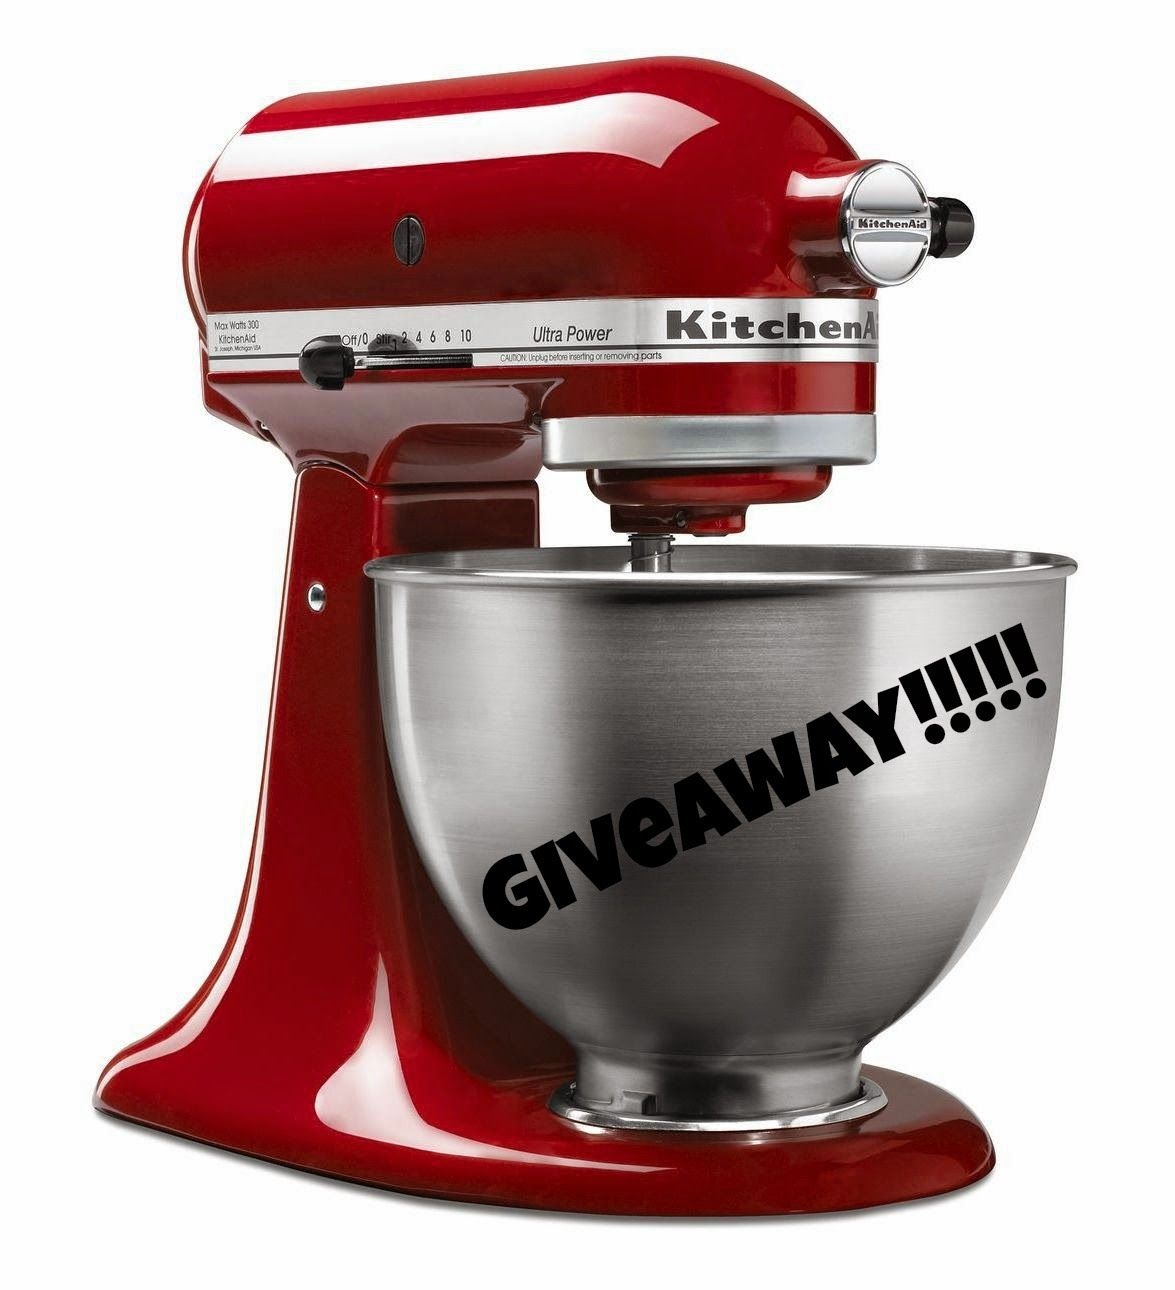 Kitchen aid stand mixer giveaway hosted by gladden